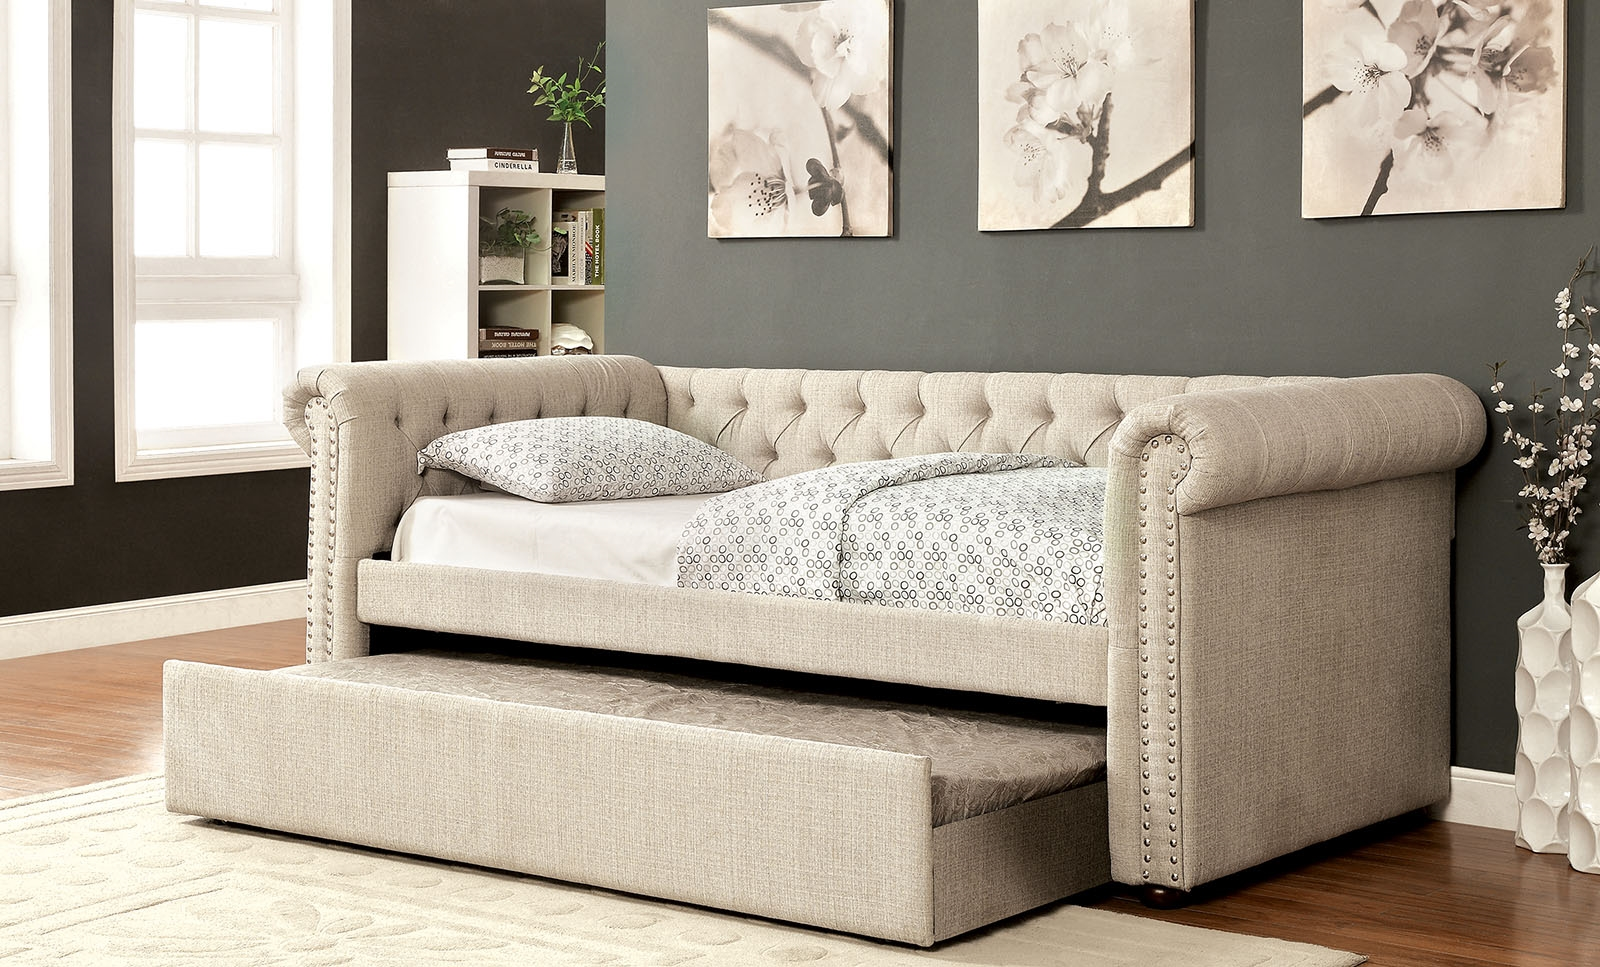 Leanna Queen Size Tufted Upholstered